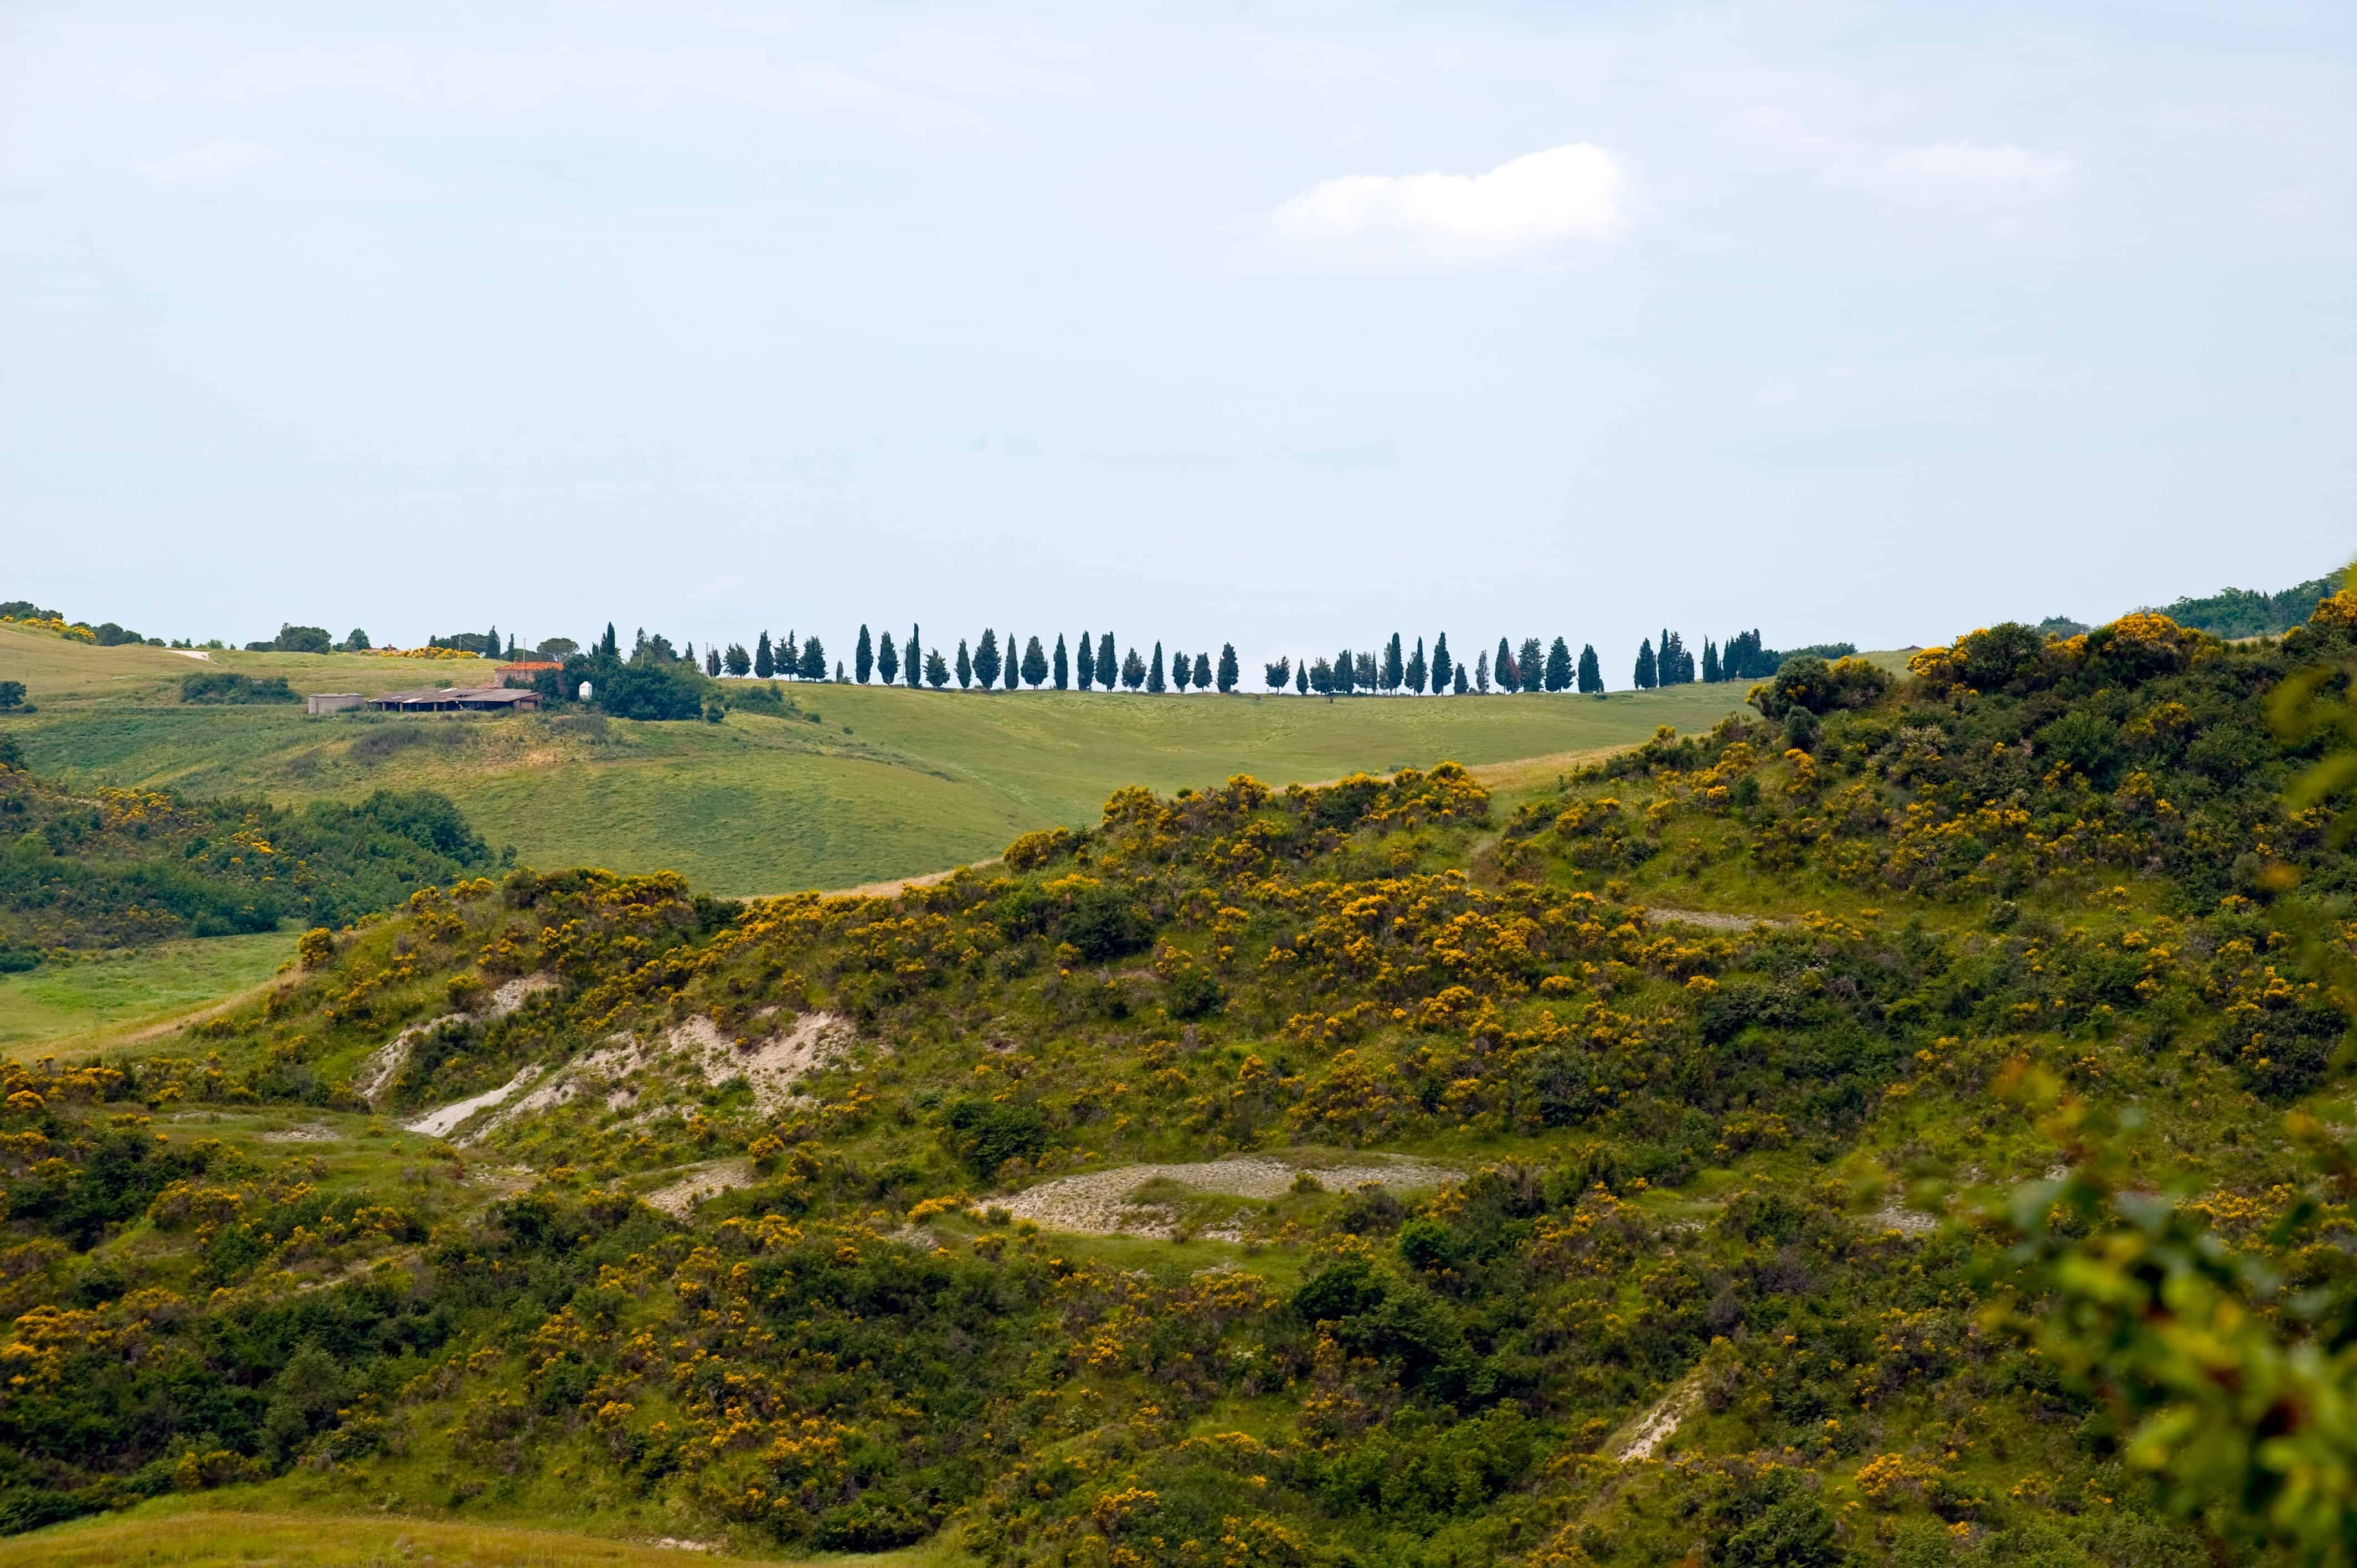 Bike Tour Toscana & Test Guidato: e-bike gratis in Toscana, Vista splendidi Panorami.